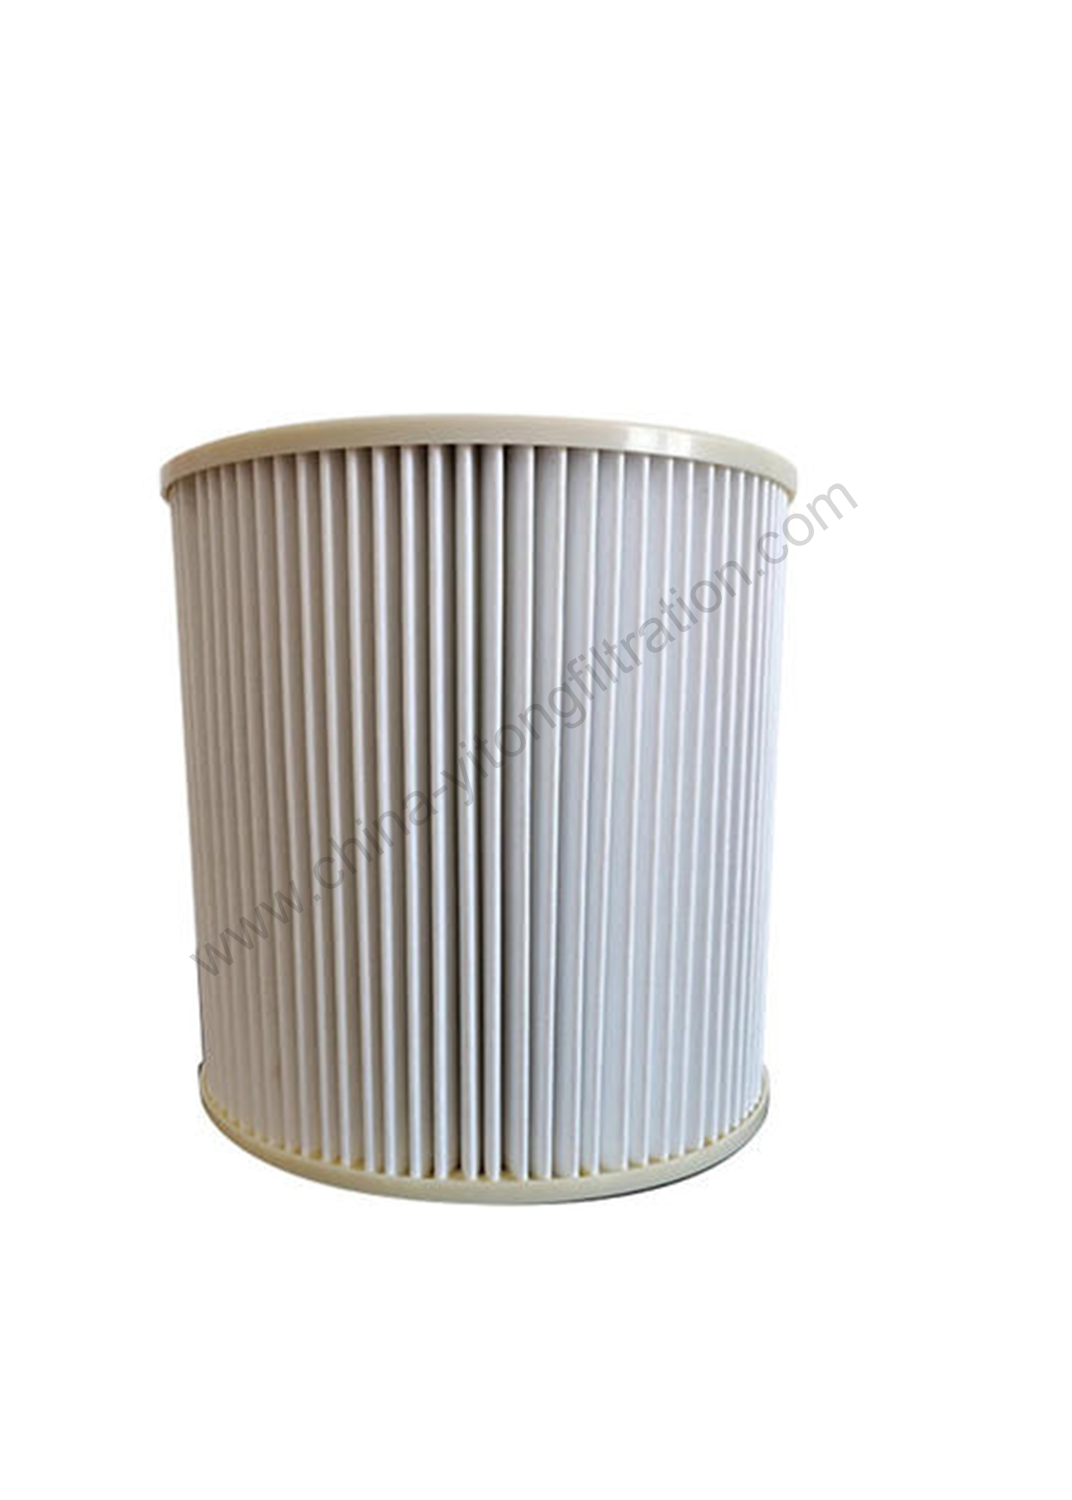 Oil Mist Purifier Filter Cartridge